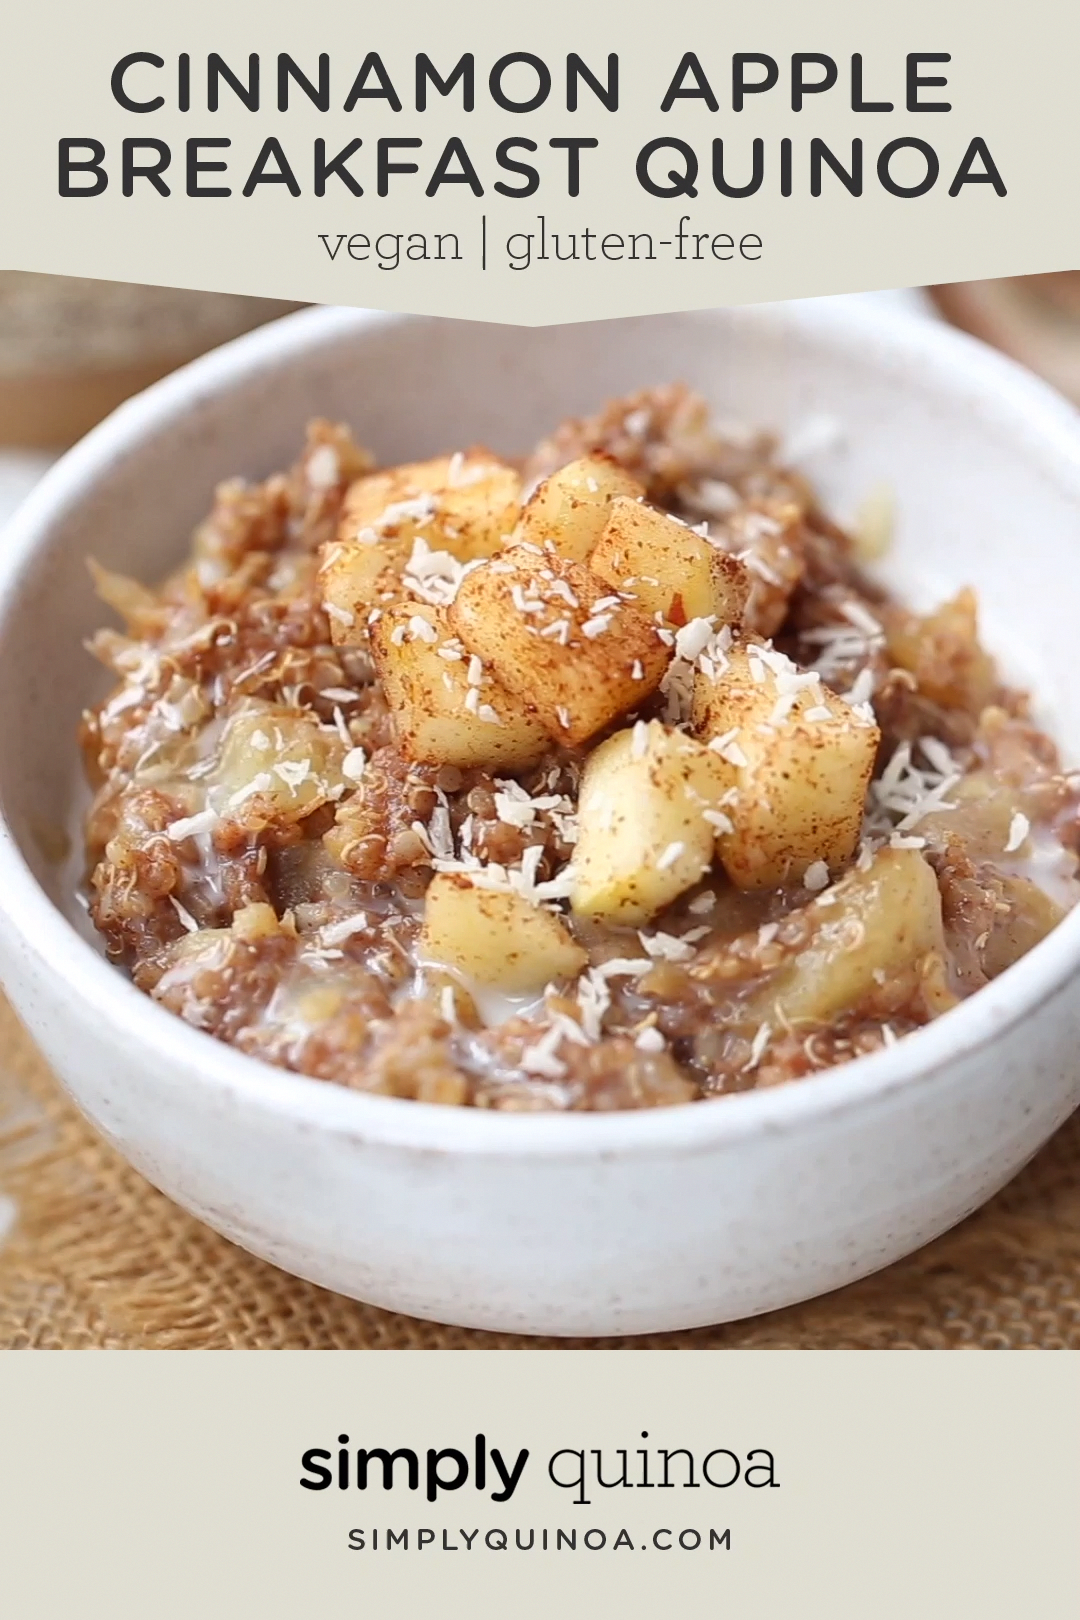 This Cinnamon Apple Breakfast Quinoa is the BEST healthy and gluten-free breakfast! Easy recipe tha